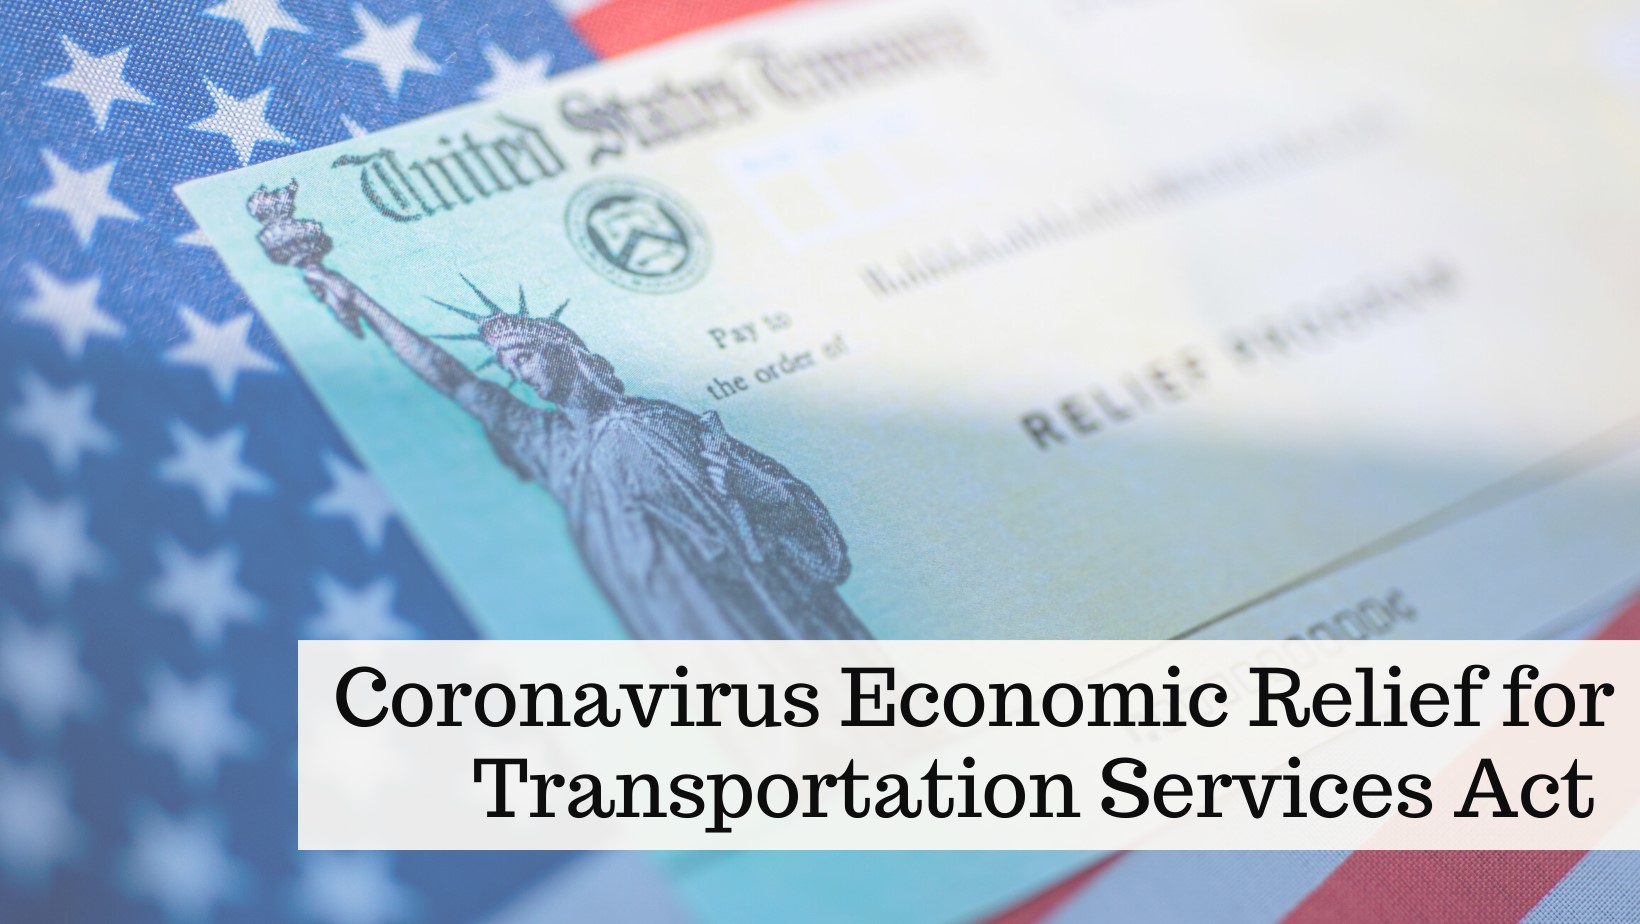 Coronavirus Economic Relief for Transportation Services Act (CERTS) – What You Need To Know